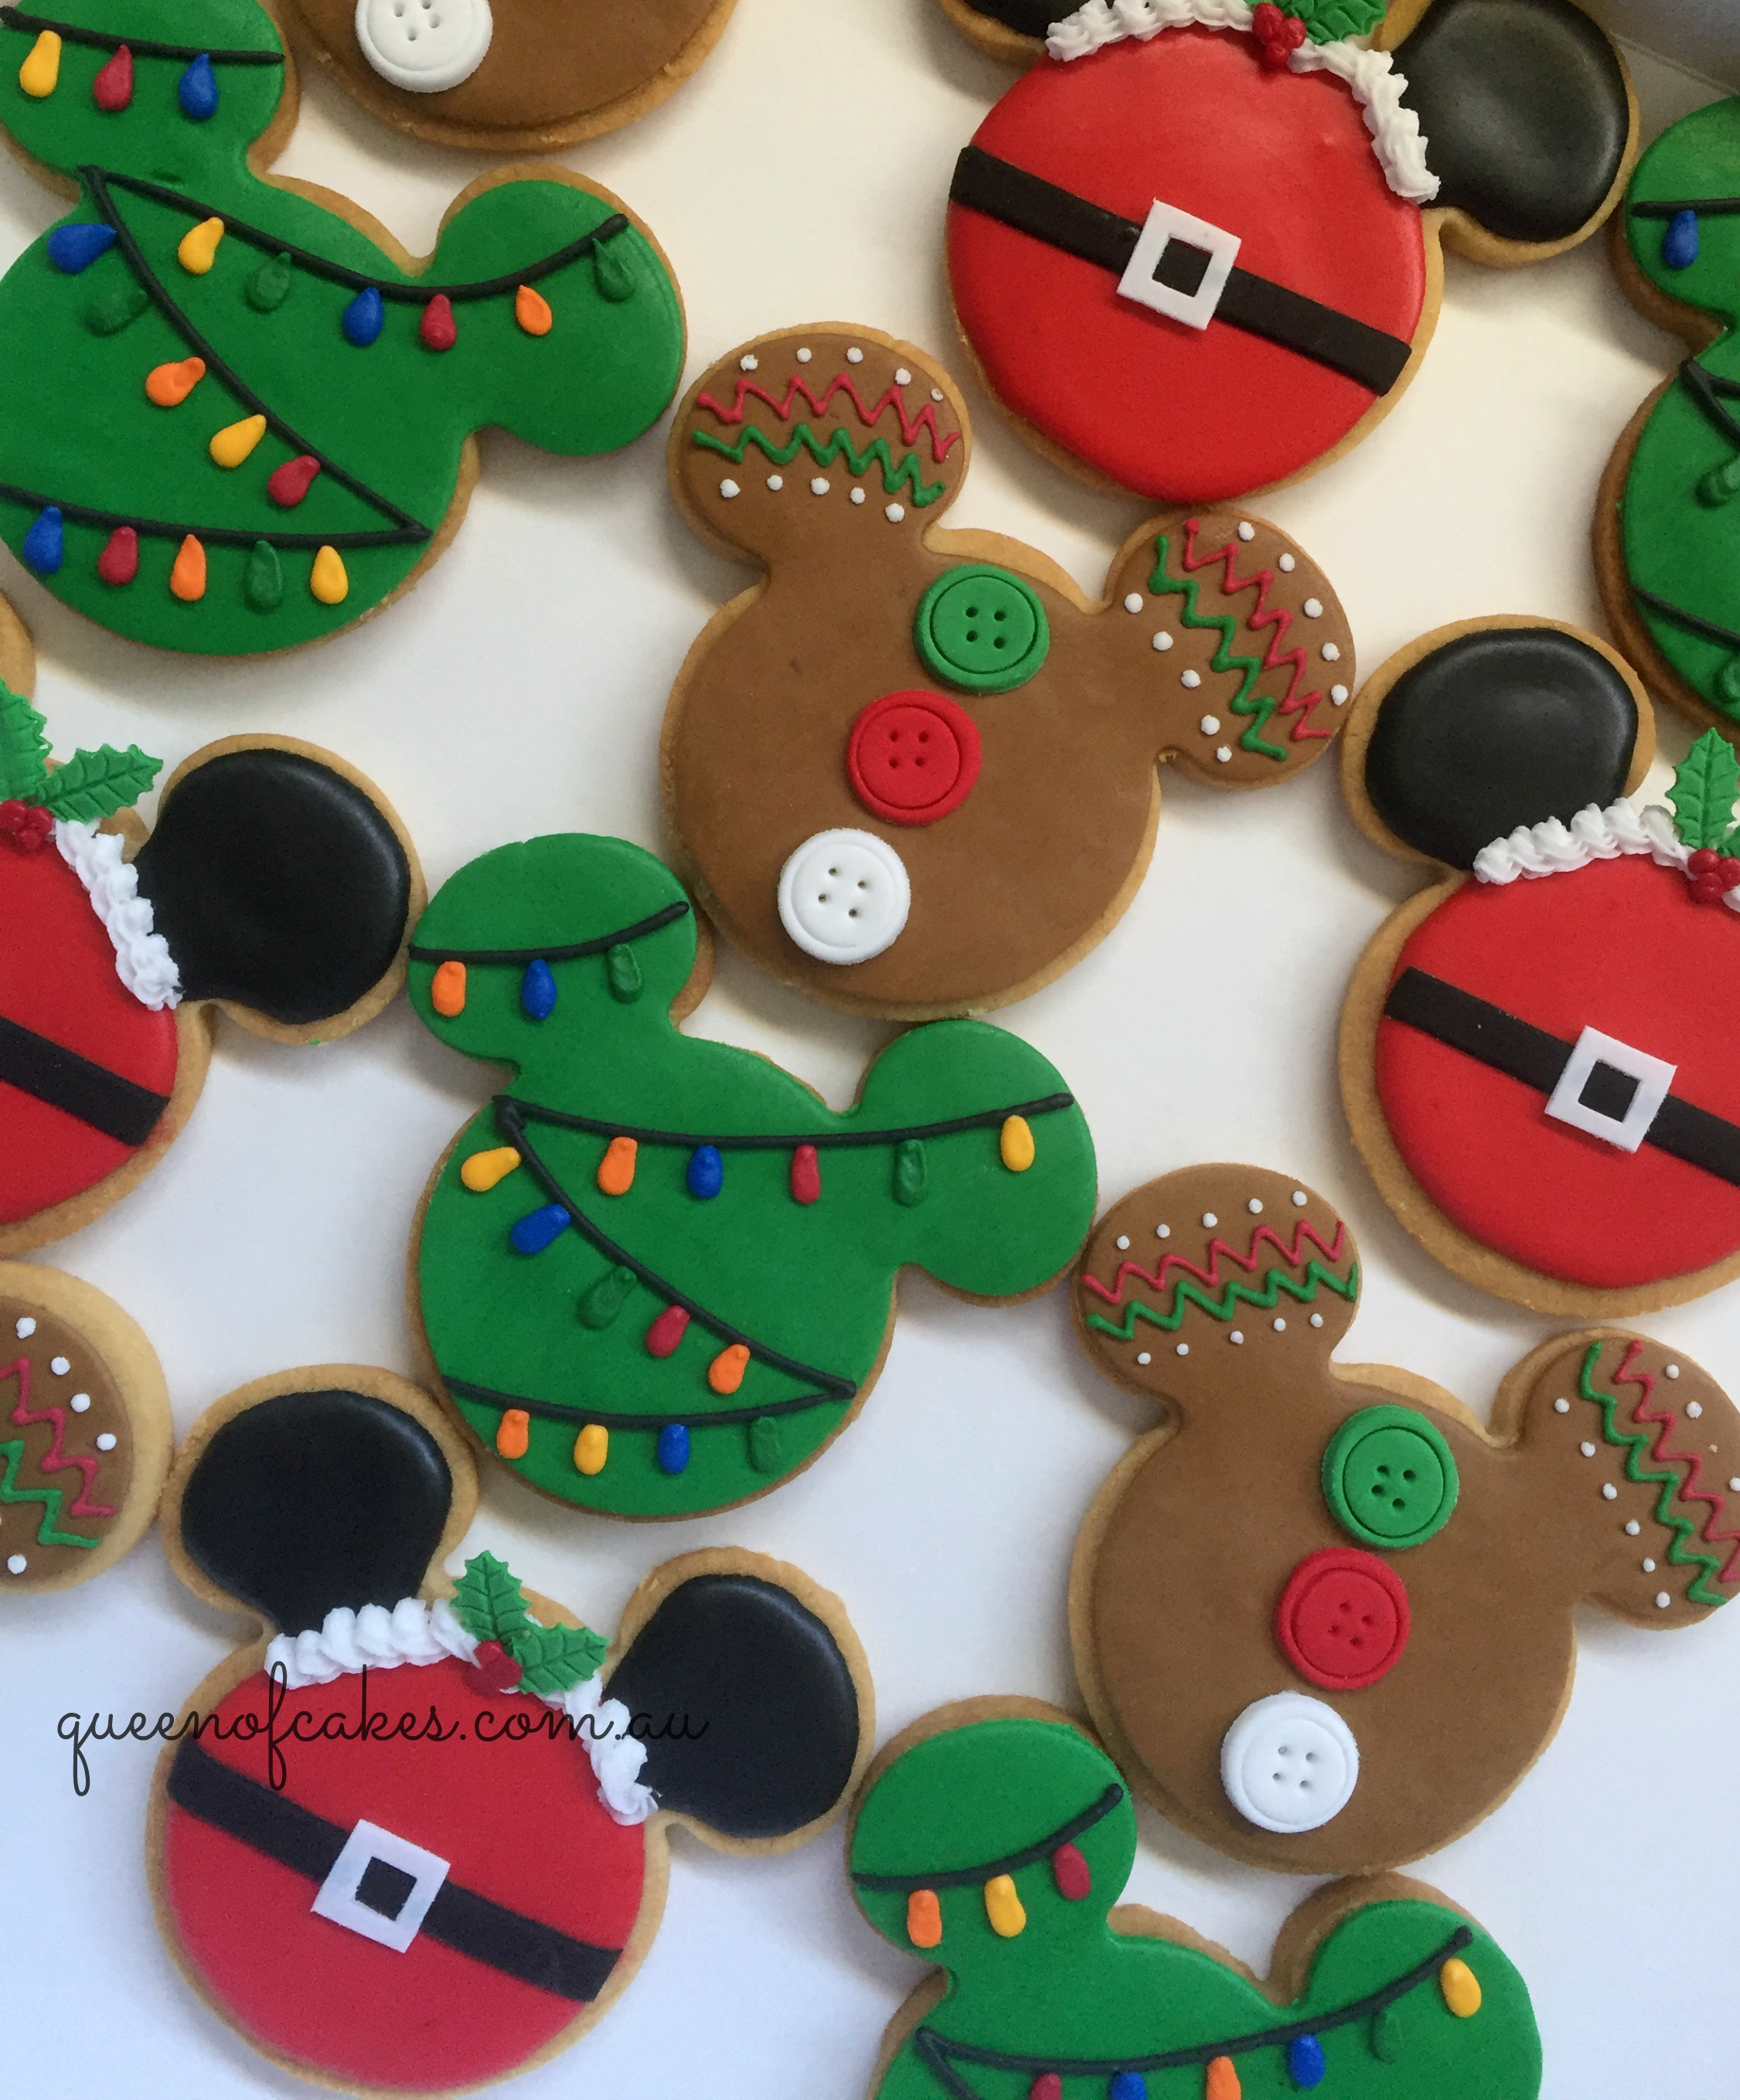 Cookie Cake Designs For Christmas